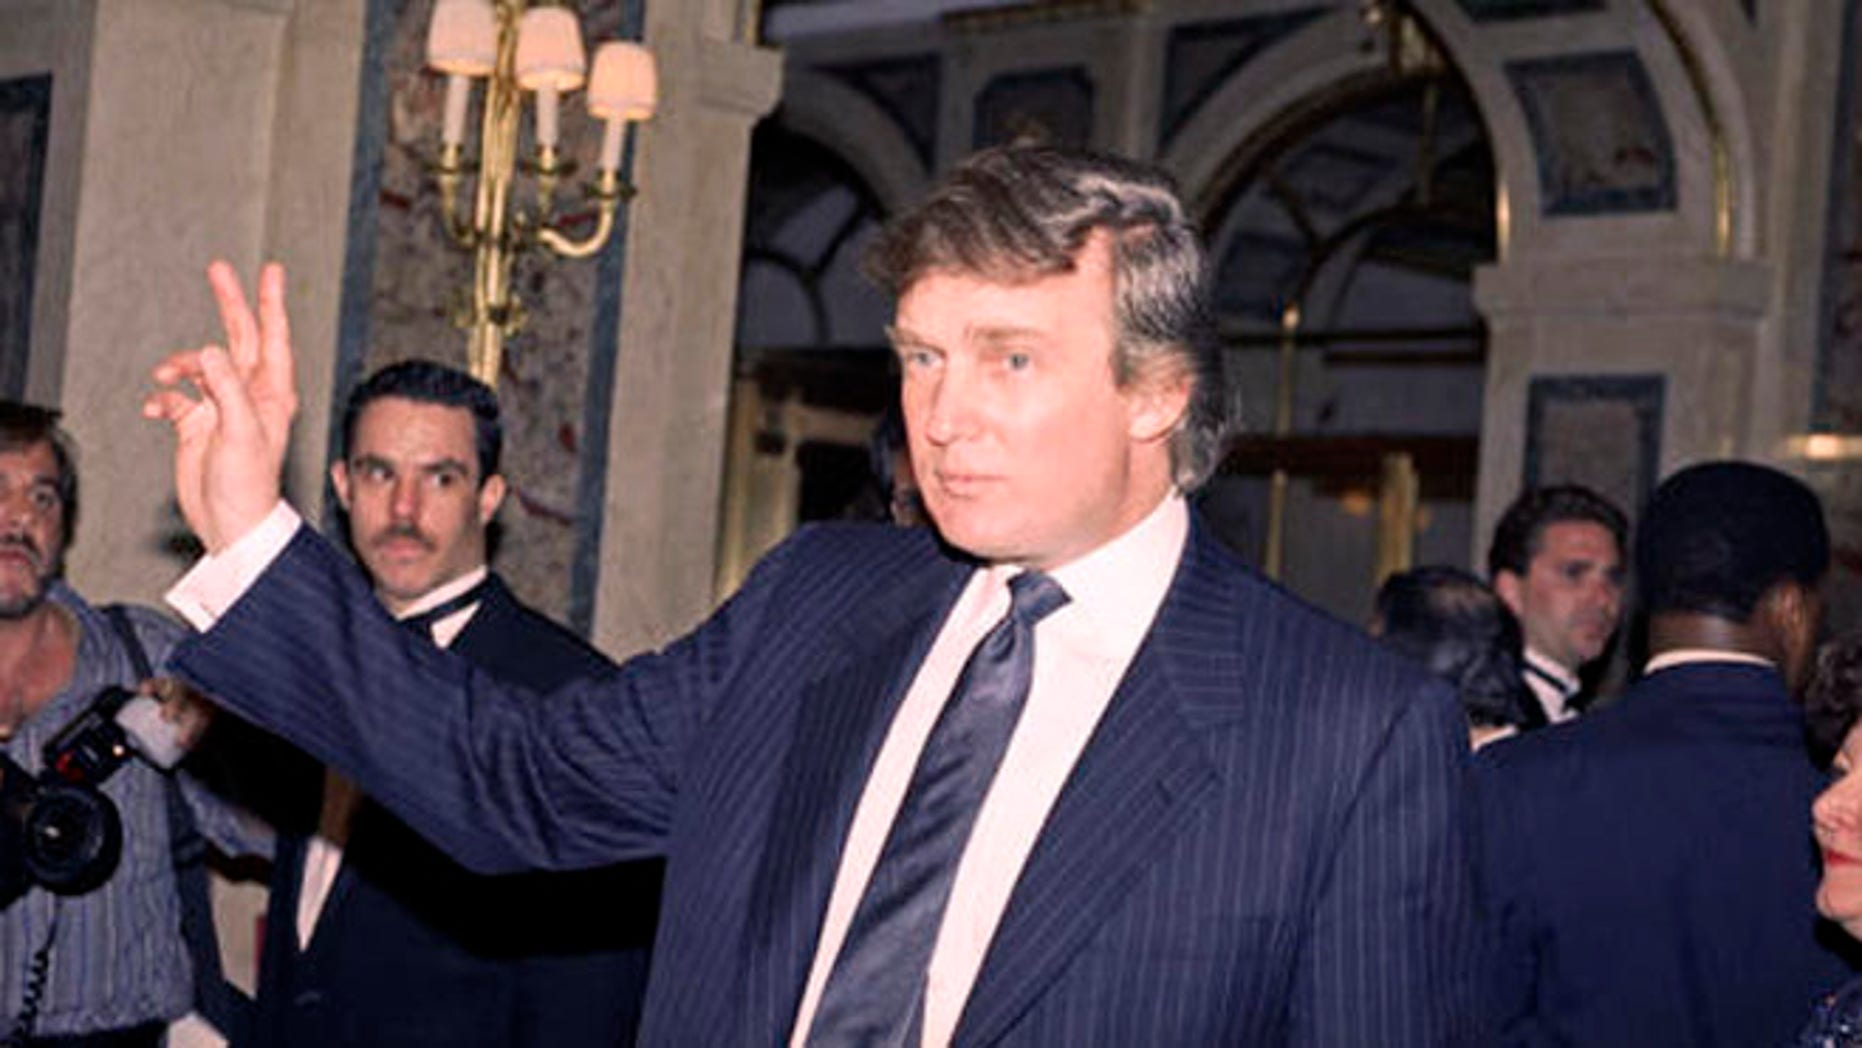 FILE - In this April 9, 1991 file photo, Donald Trump is seen in New York. Back when Trumps love life was tabloid heaven, a Trump spokesman with intimate knowledge of the businessmans personal relationships offered juicy stories about a failing marriage, a new live-in paramour and three other girlfriends he was juggling at once. (AP Photo/Luiz Ribeiro, File)